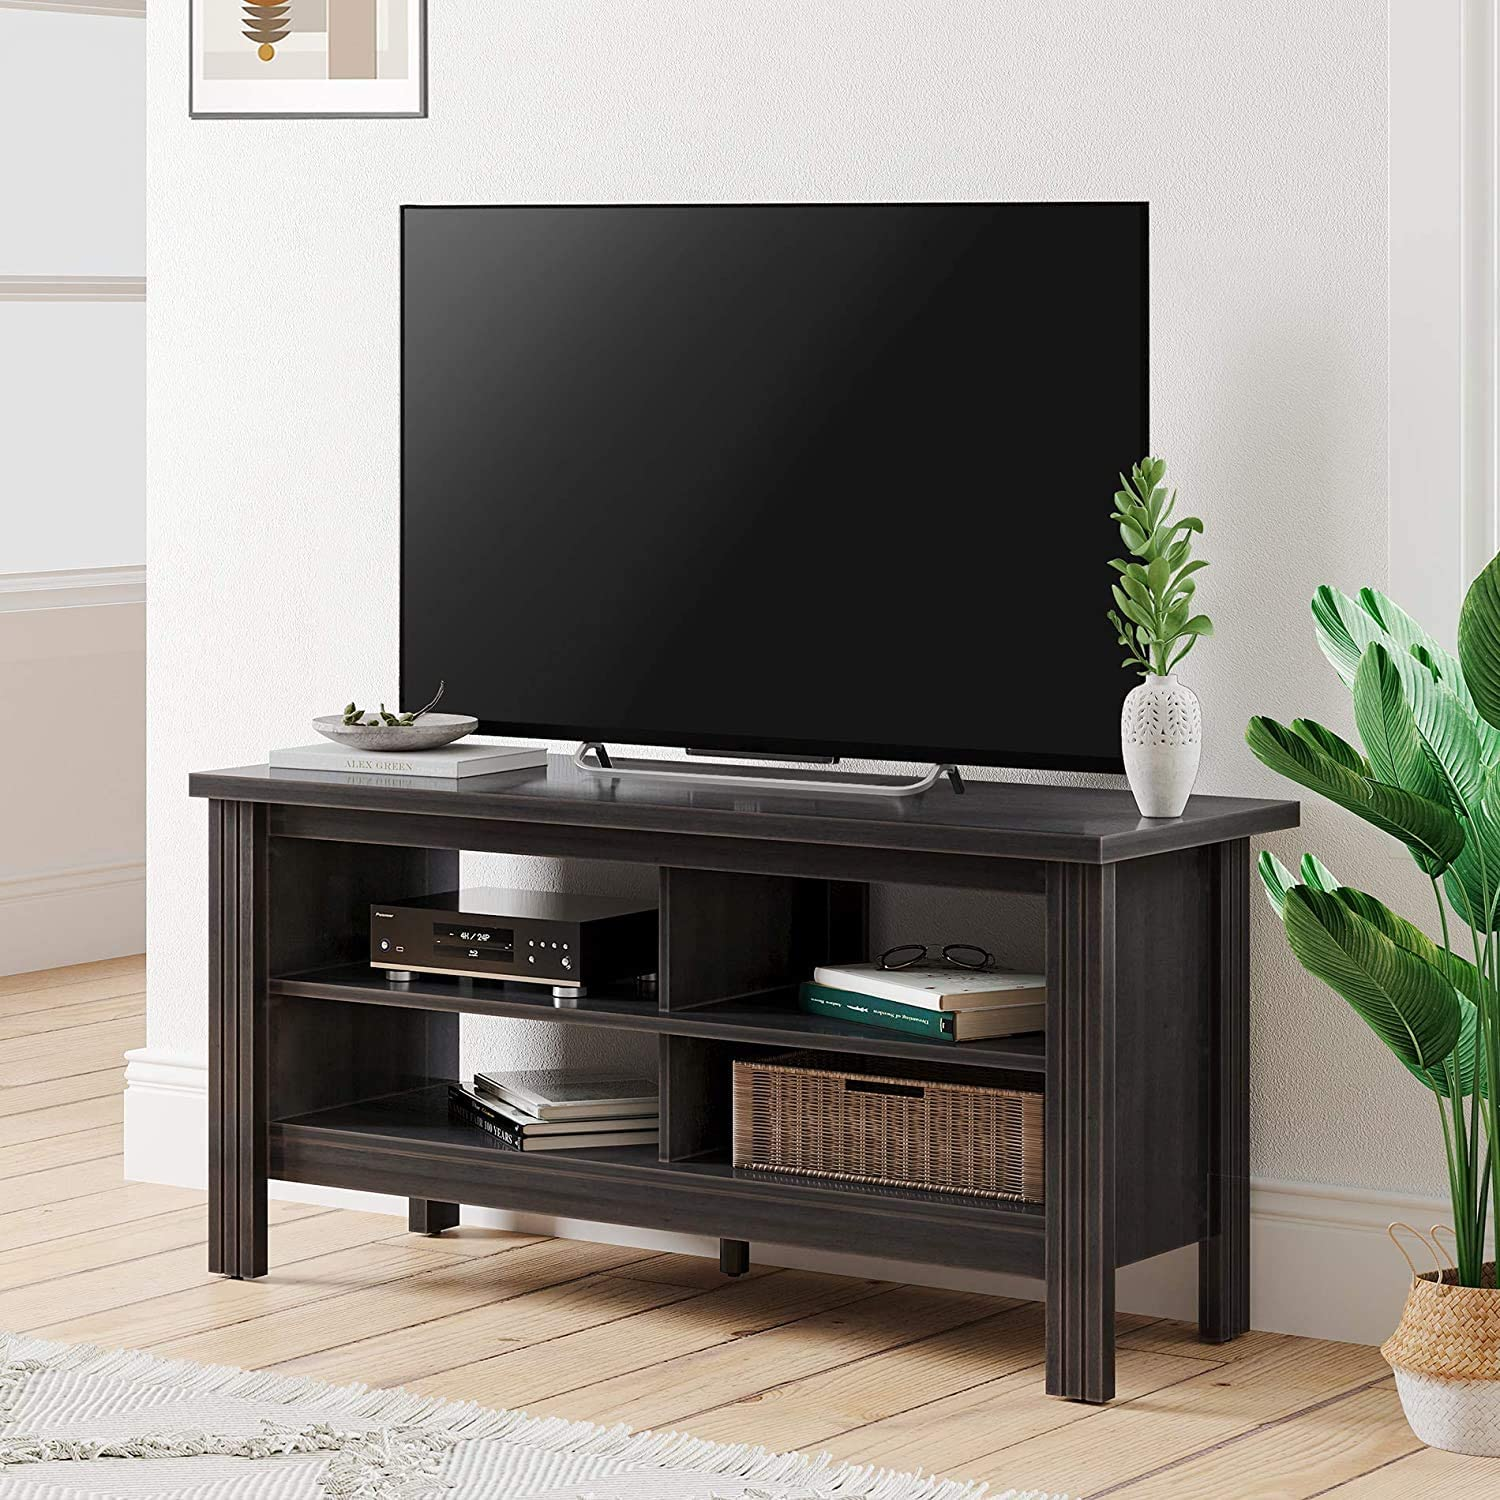 Wampat Farmhouse Tv Stands For 55 Inch Tv Media Storage Shelves Entertainment Center For Living Room And Bedroom Black 43inch Home Audio Theater